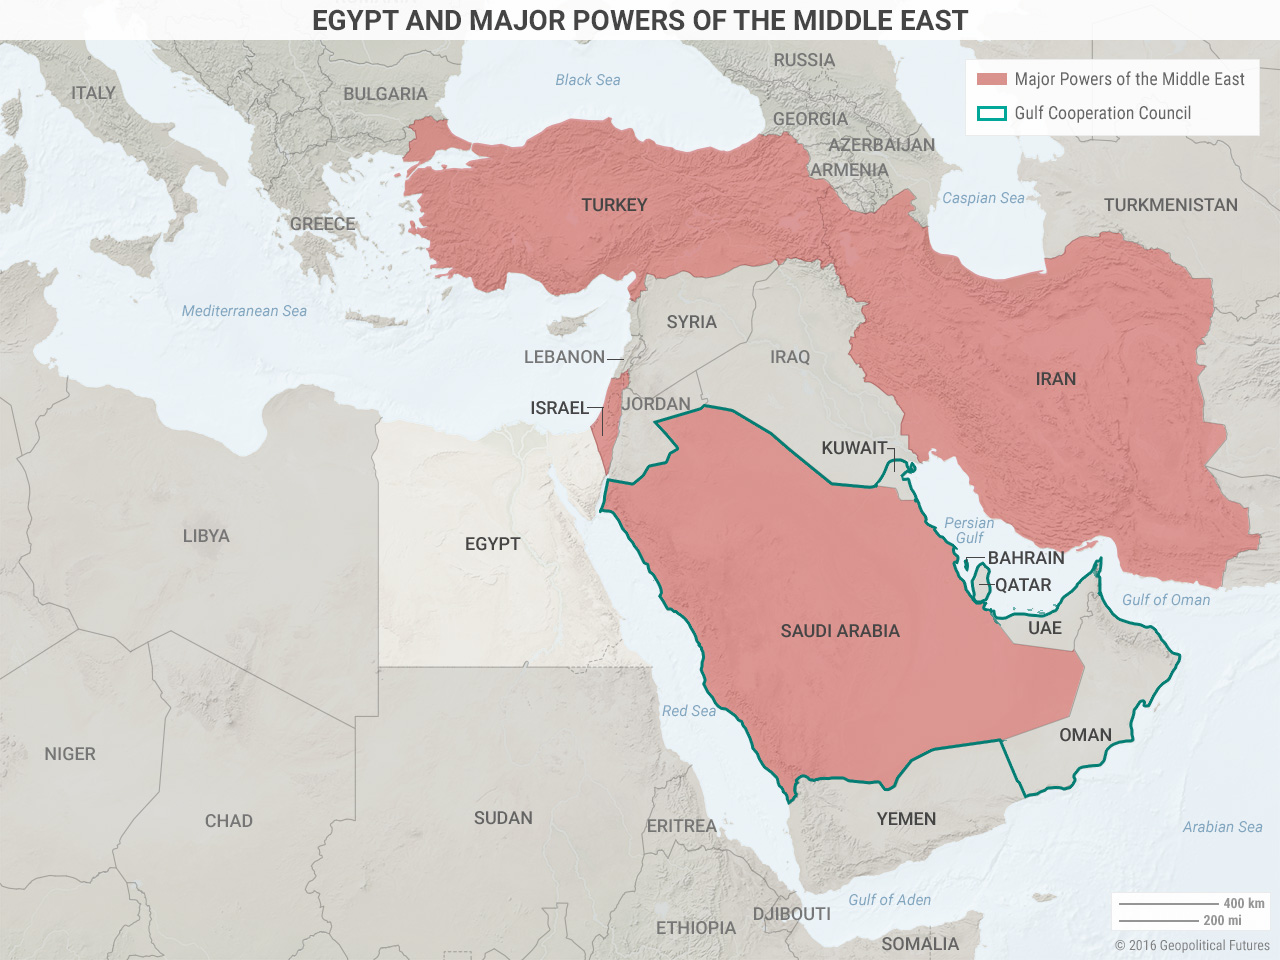 Egypt and Major Powers of the Middle East